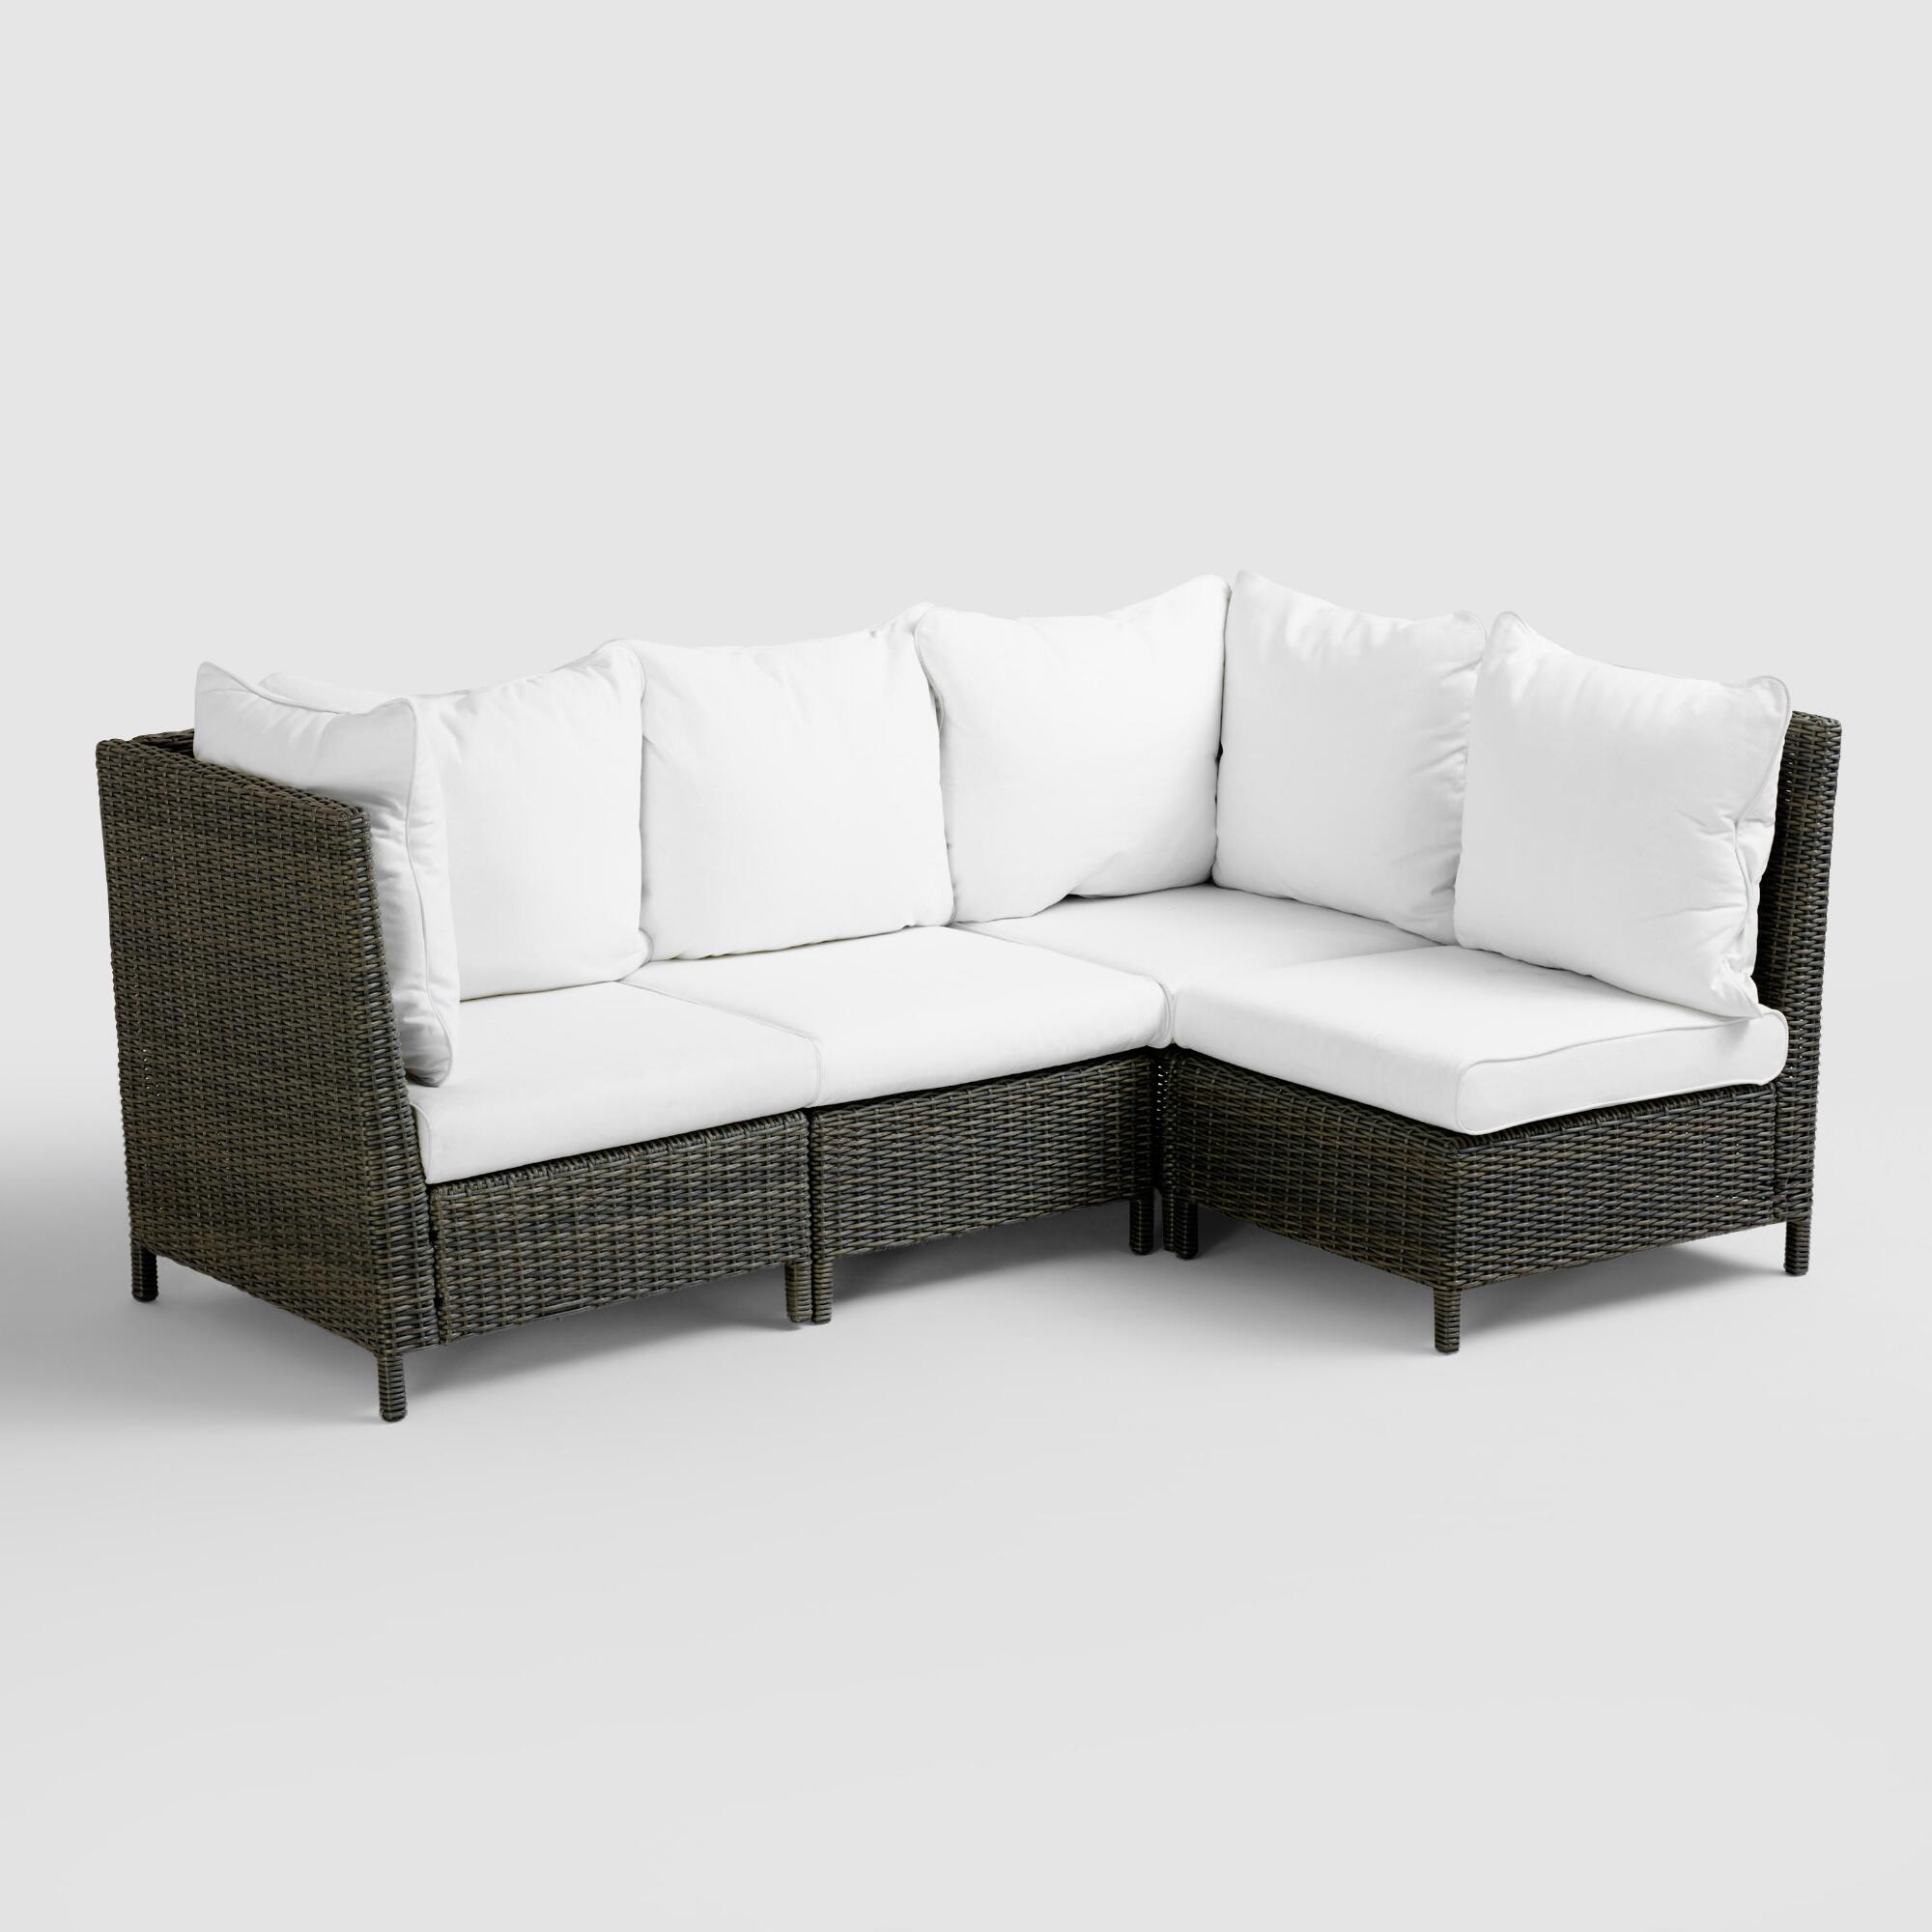 inspirational world market sofa bed marmsweb marmsweb. Black Bedroom Furniture Sets. Home Design Ideas